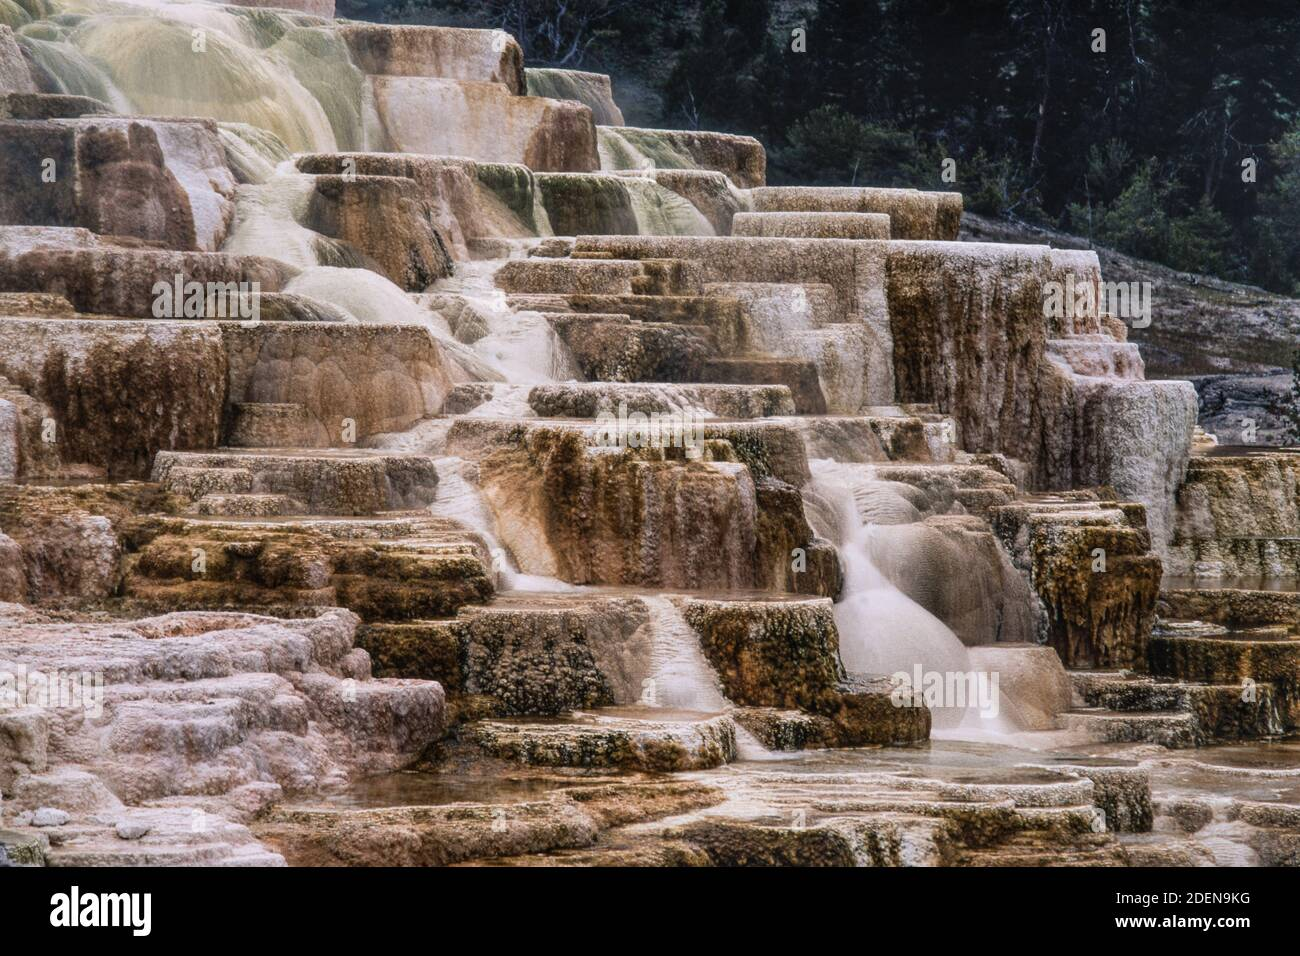 Colorful mineral formations of Palette Spring in the Mammoth Hot Springs in Yellowstone National Park in Wyoming, USA. Stock Photo